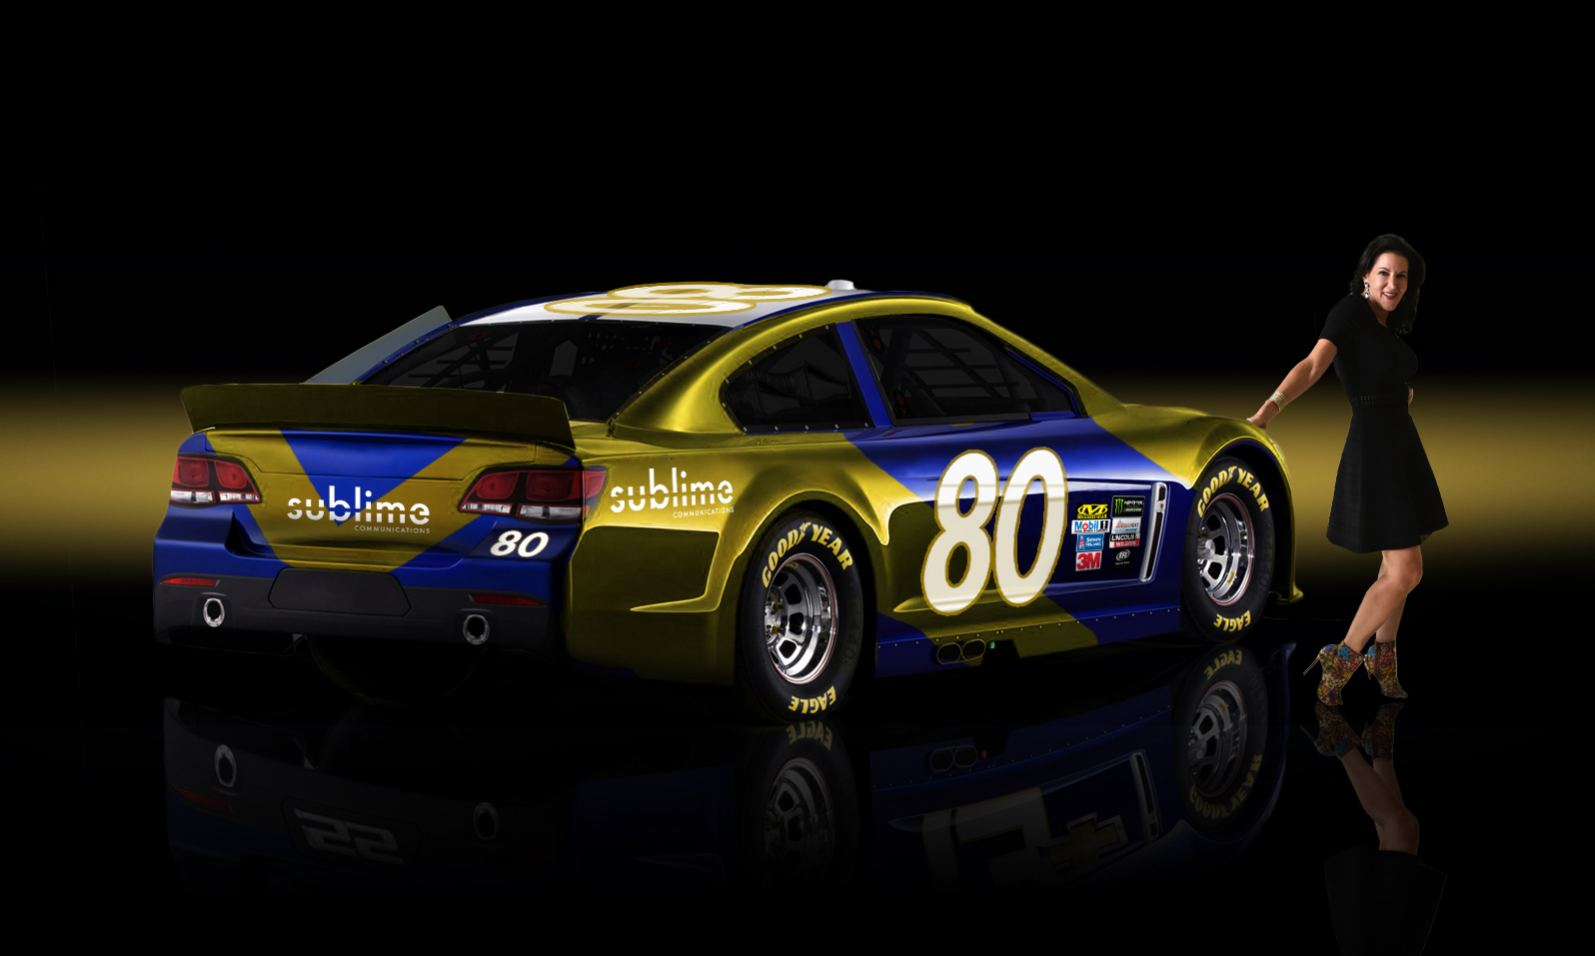 Sublime Communications NASCAR #80